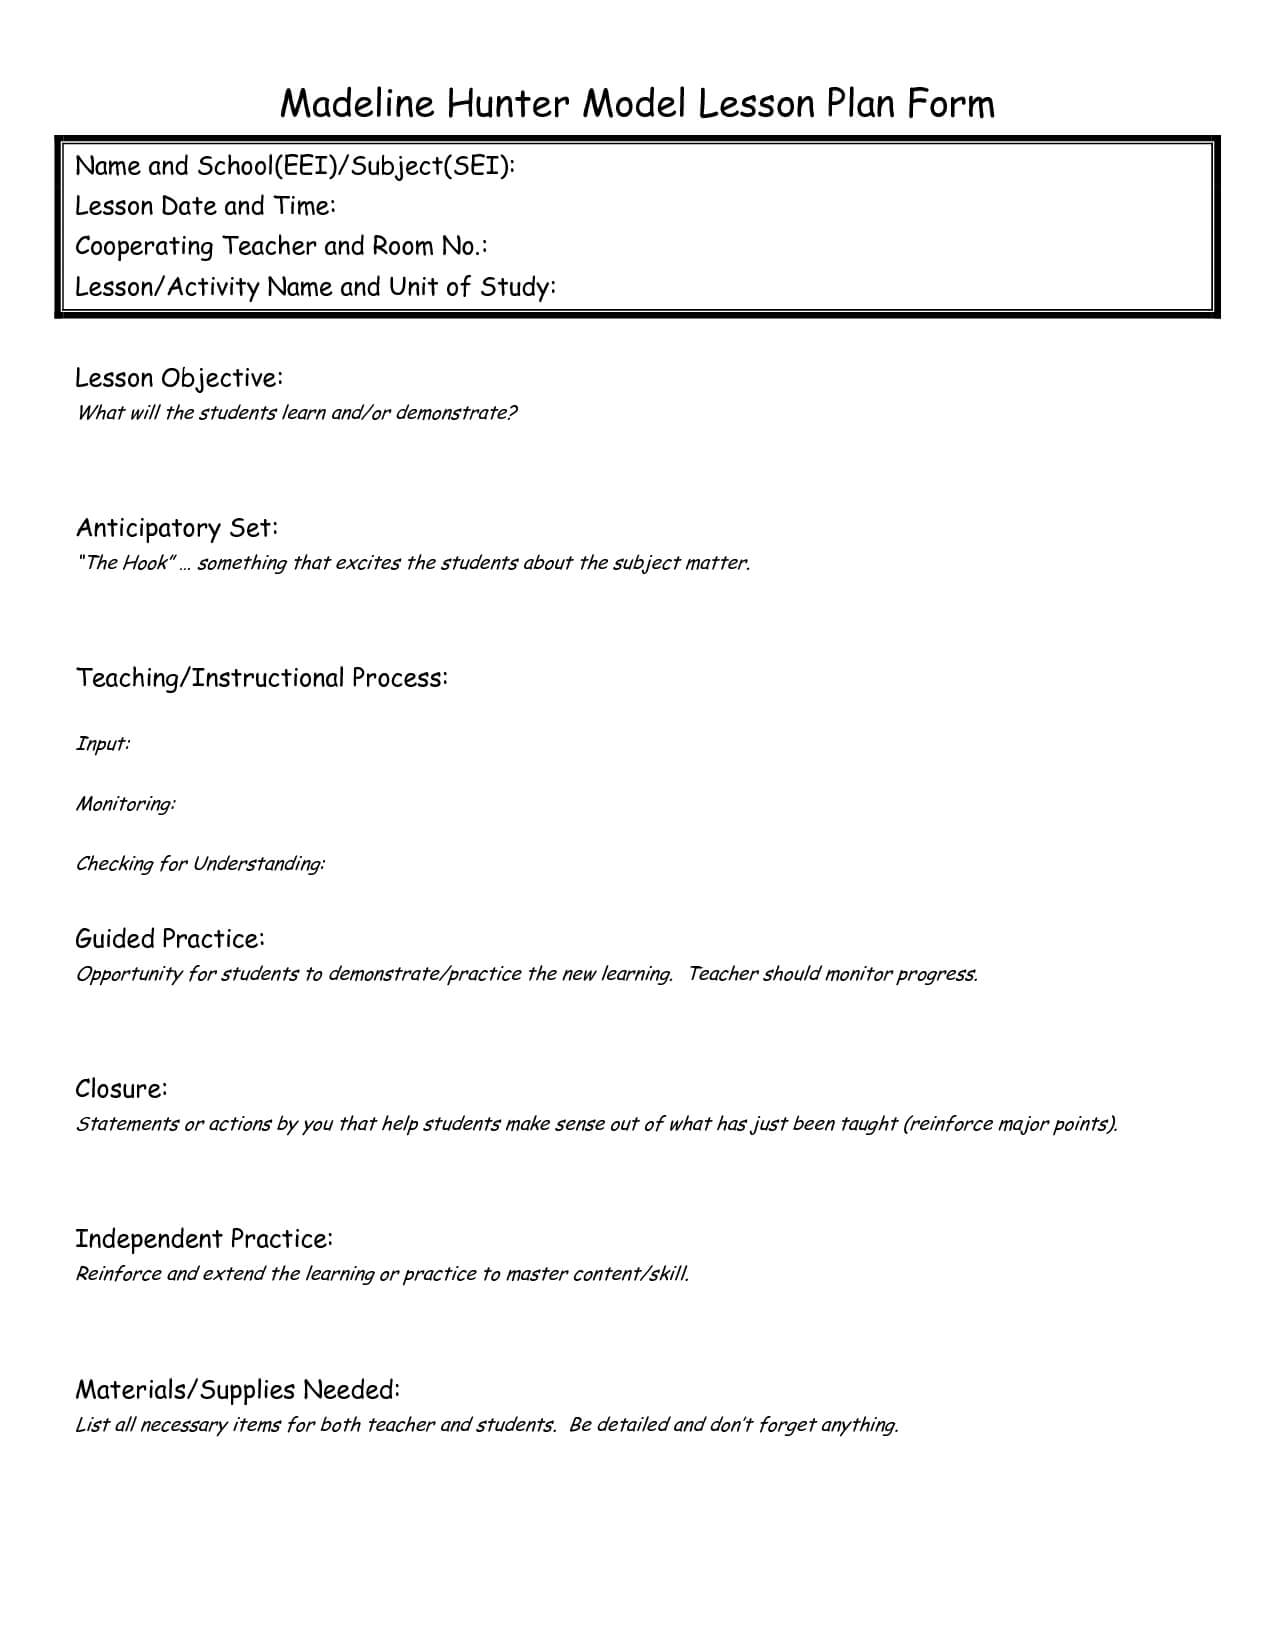 Madeline Hunter Lesson Plan Format Template - Google Search throughout Madeline Hunter Lesson Plan Blank Template